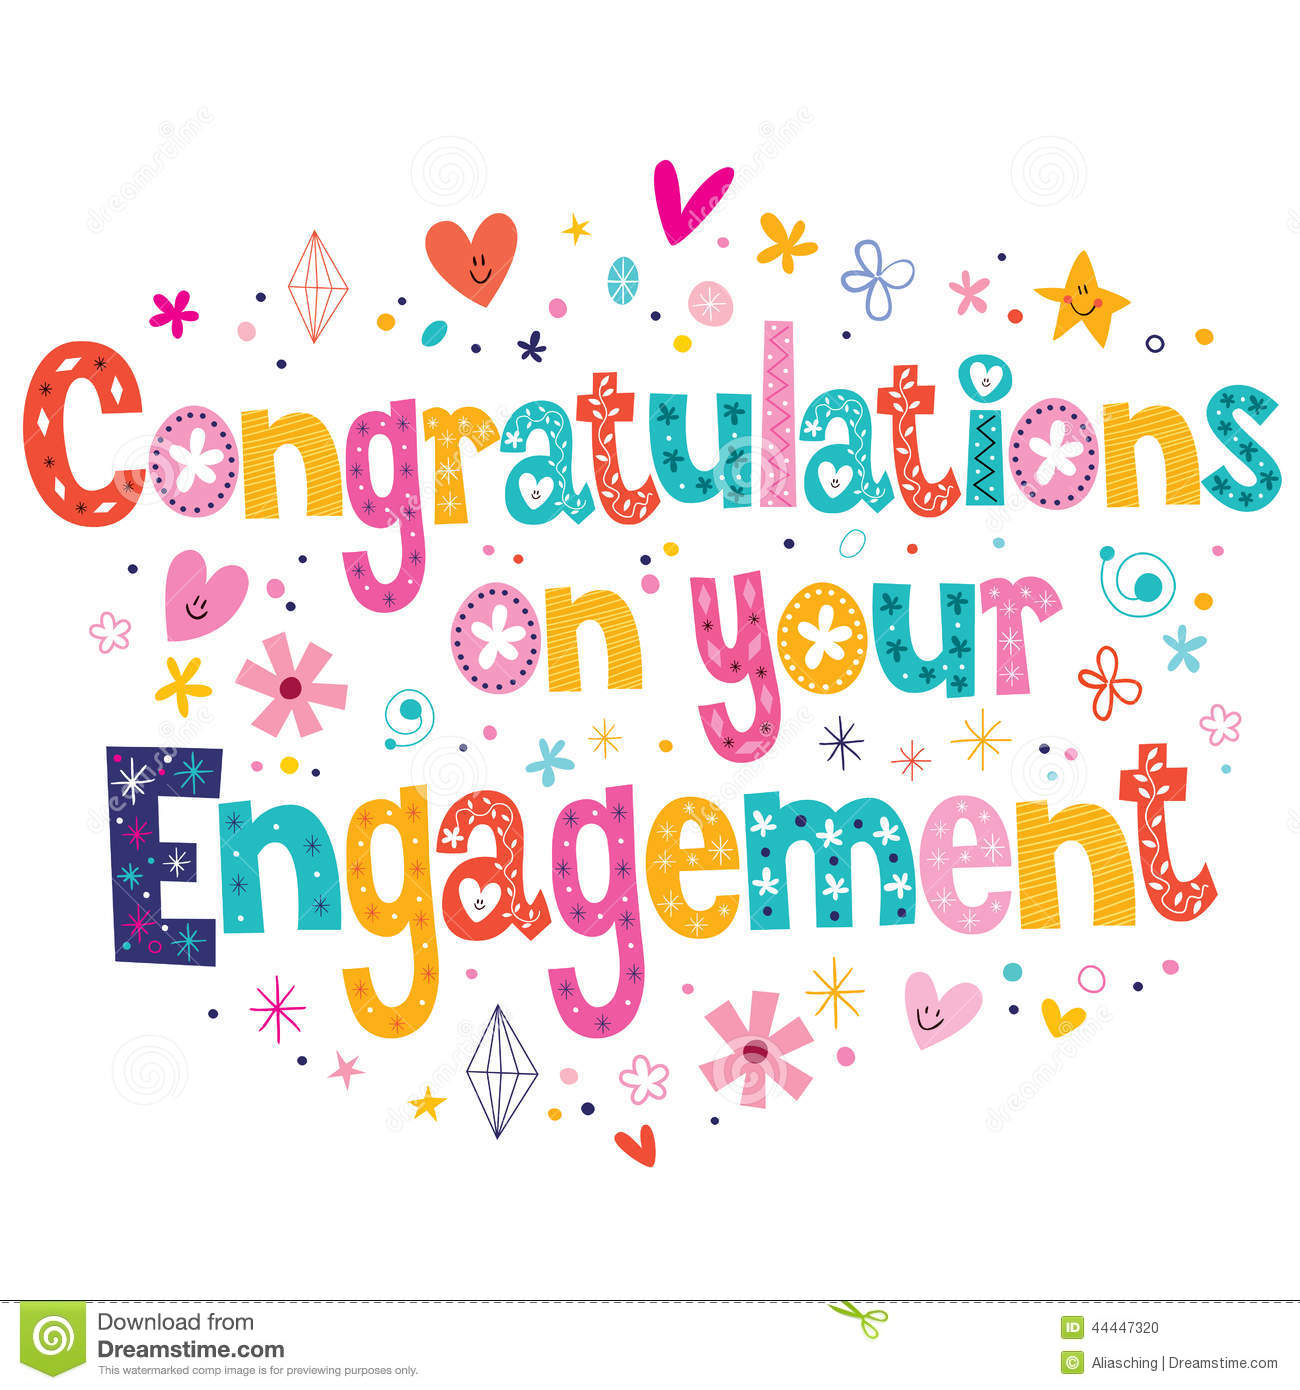 100 congratulations on your marriage cards wedding card